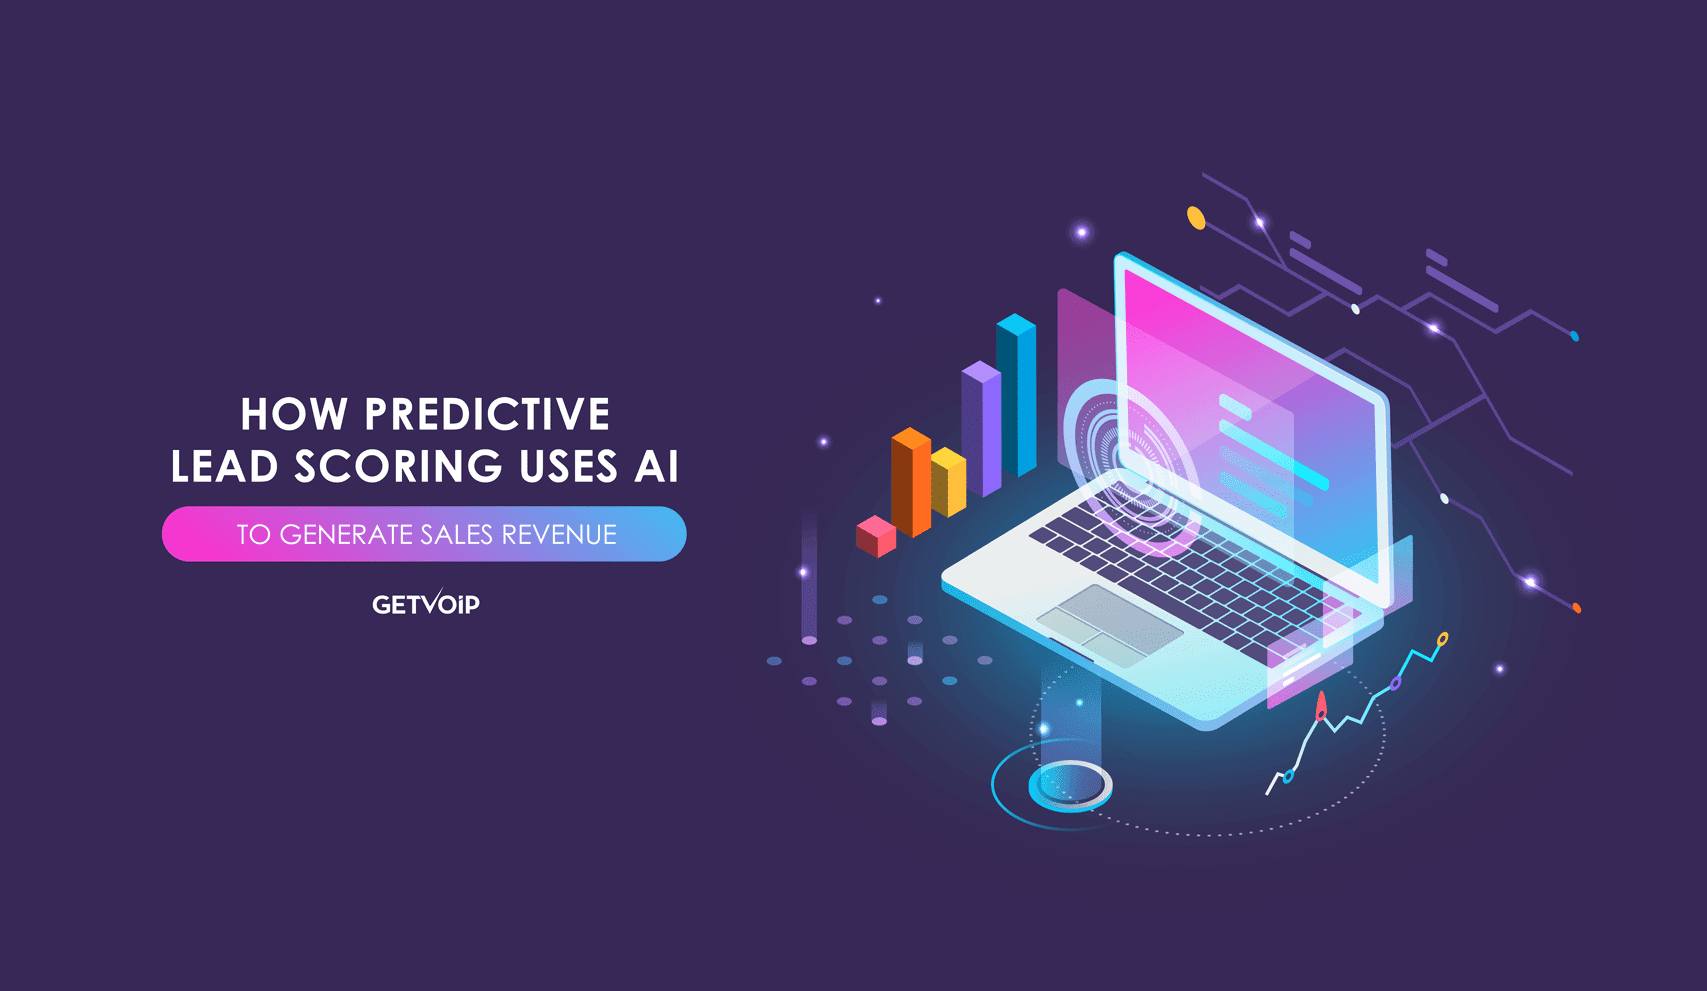 How Predictive Lead Scoring Uses AI to Generate Sales Revenue